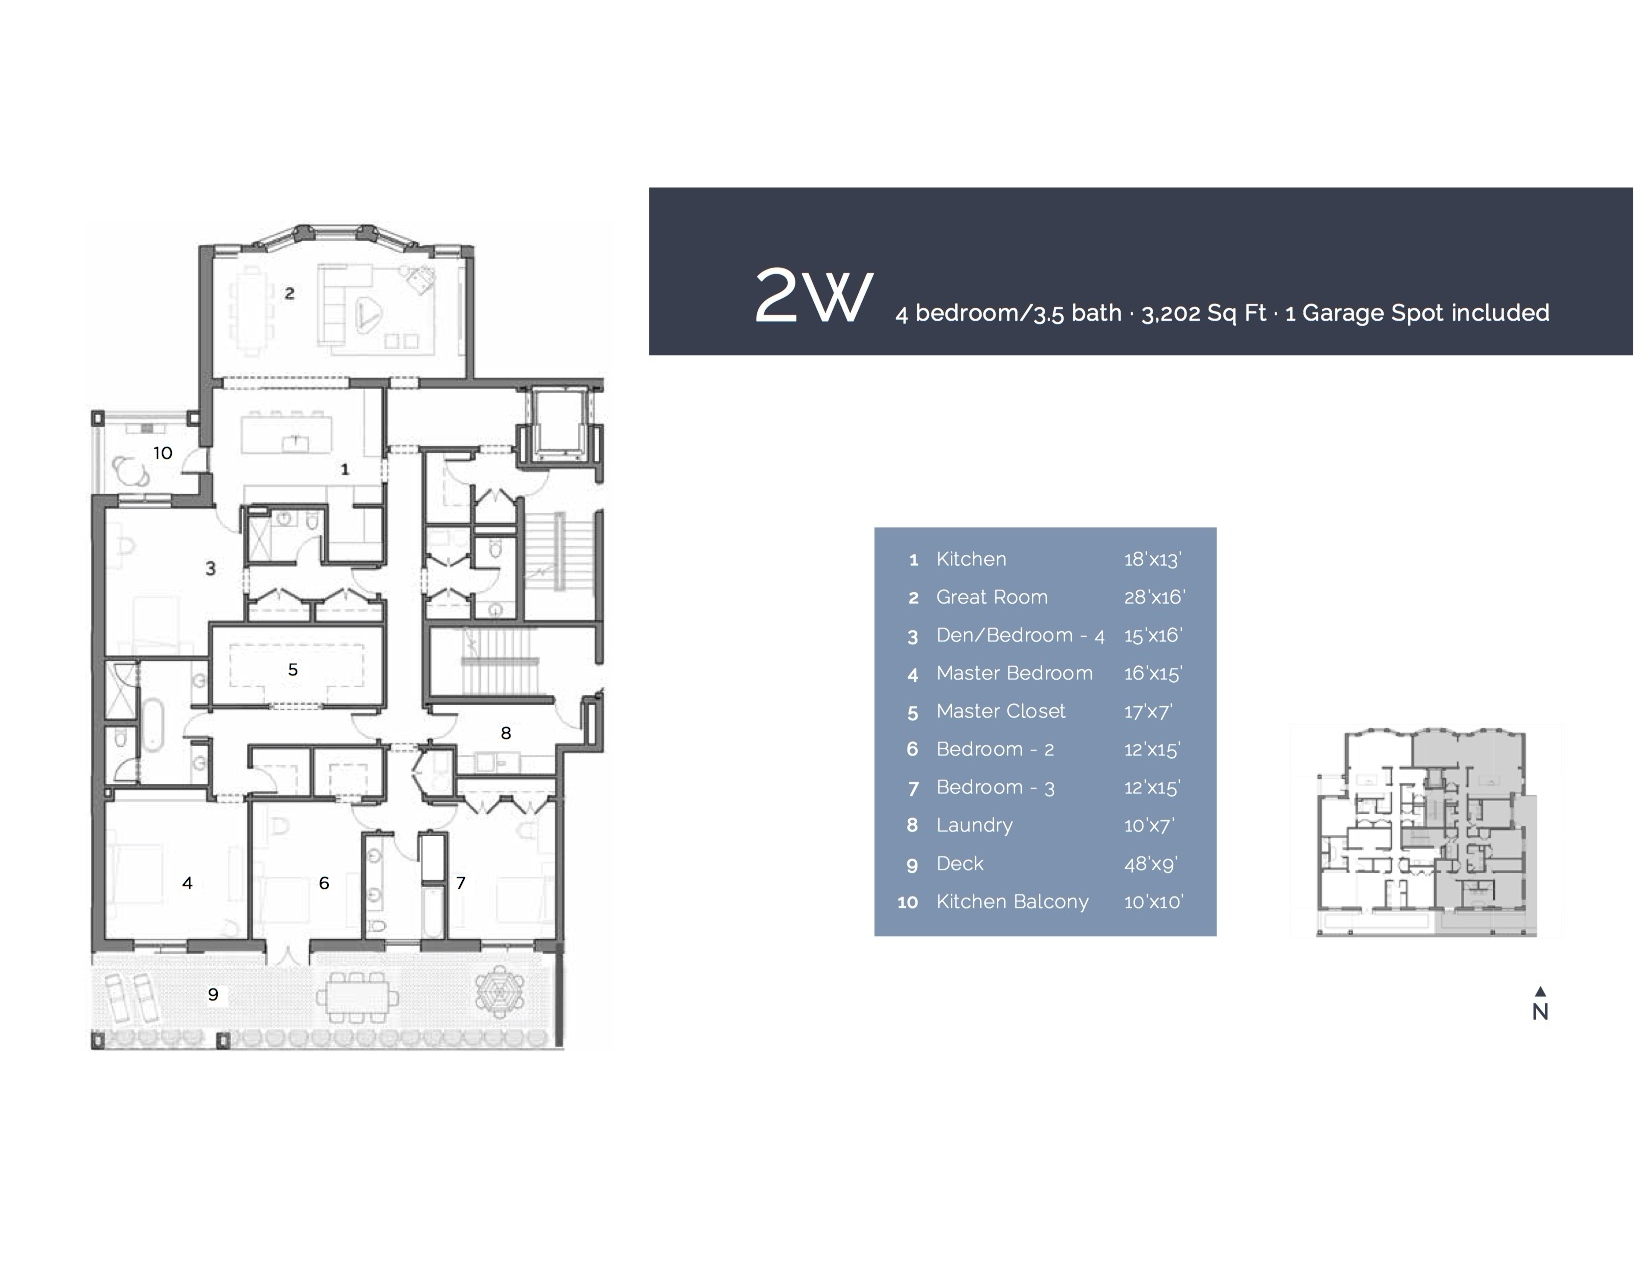 2W - 4 Bedroom/ 3.5 Bath 3202 sf.